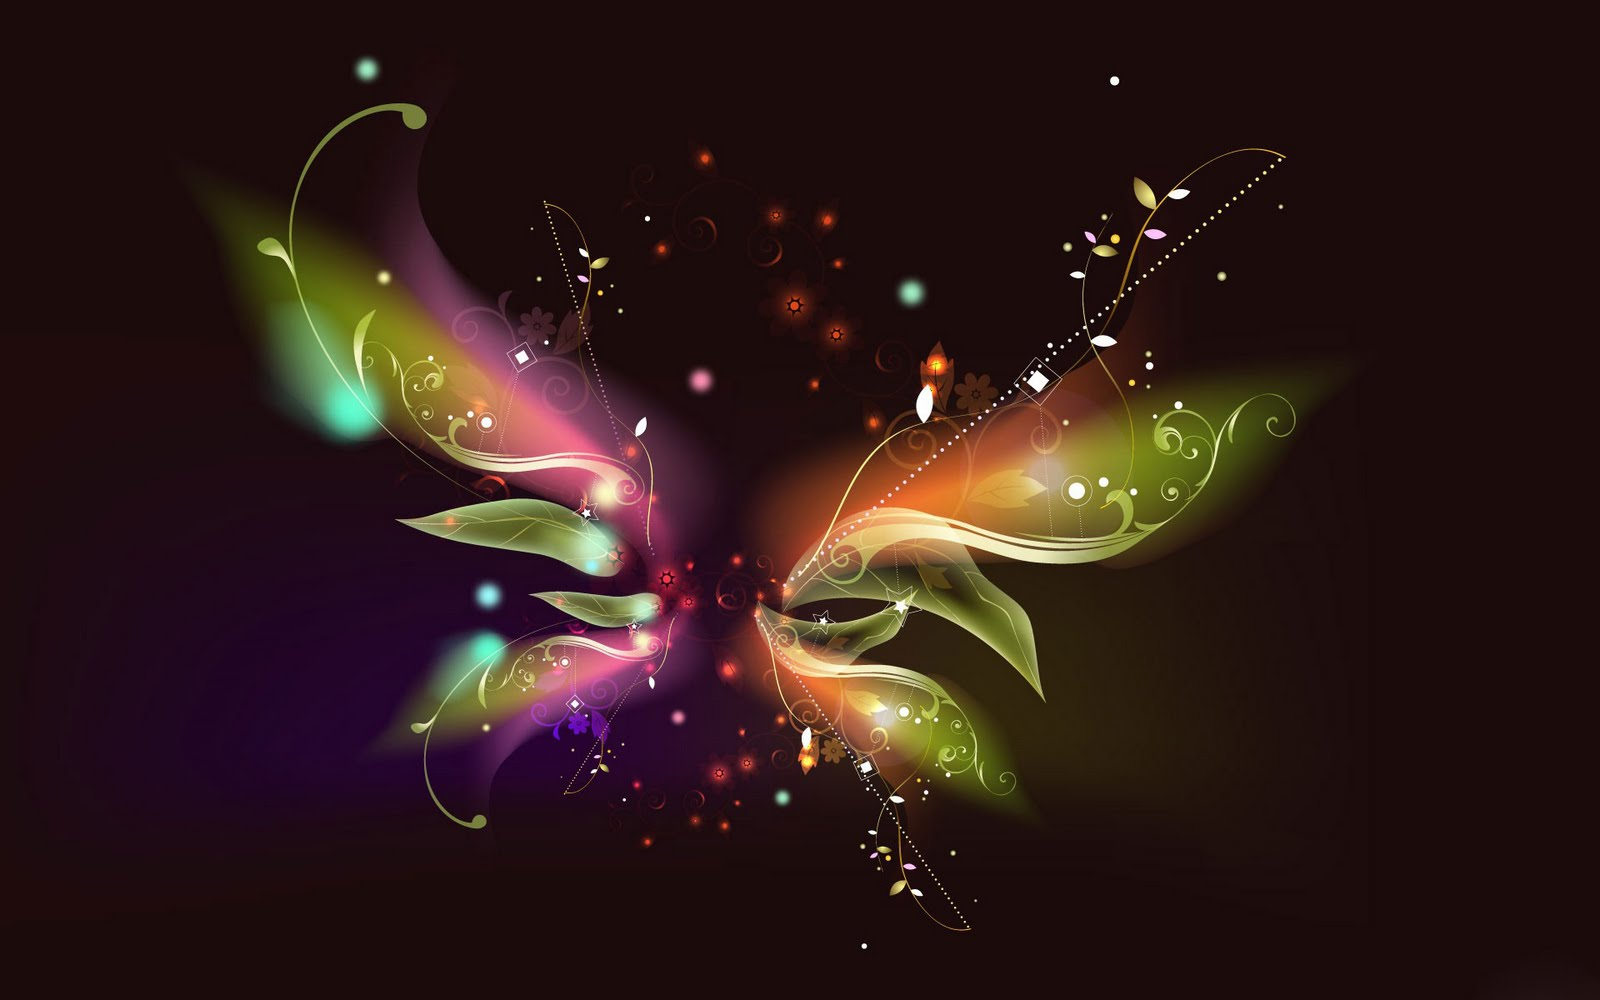 http://2.bp.blogspot.com/_2IU2Nt4rD1k/S8rAfq5bE3I/AAAAAAAABc8/GsA0Cv9EkOk/s1600/Butterfly_desktop_background.jpg